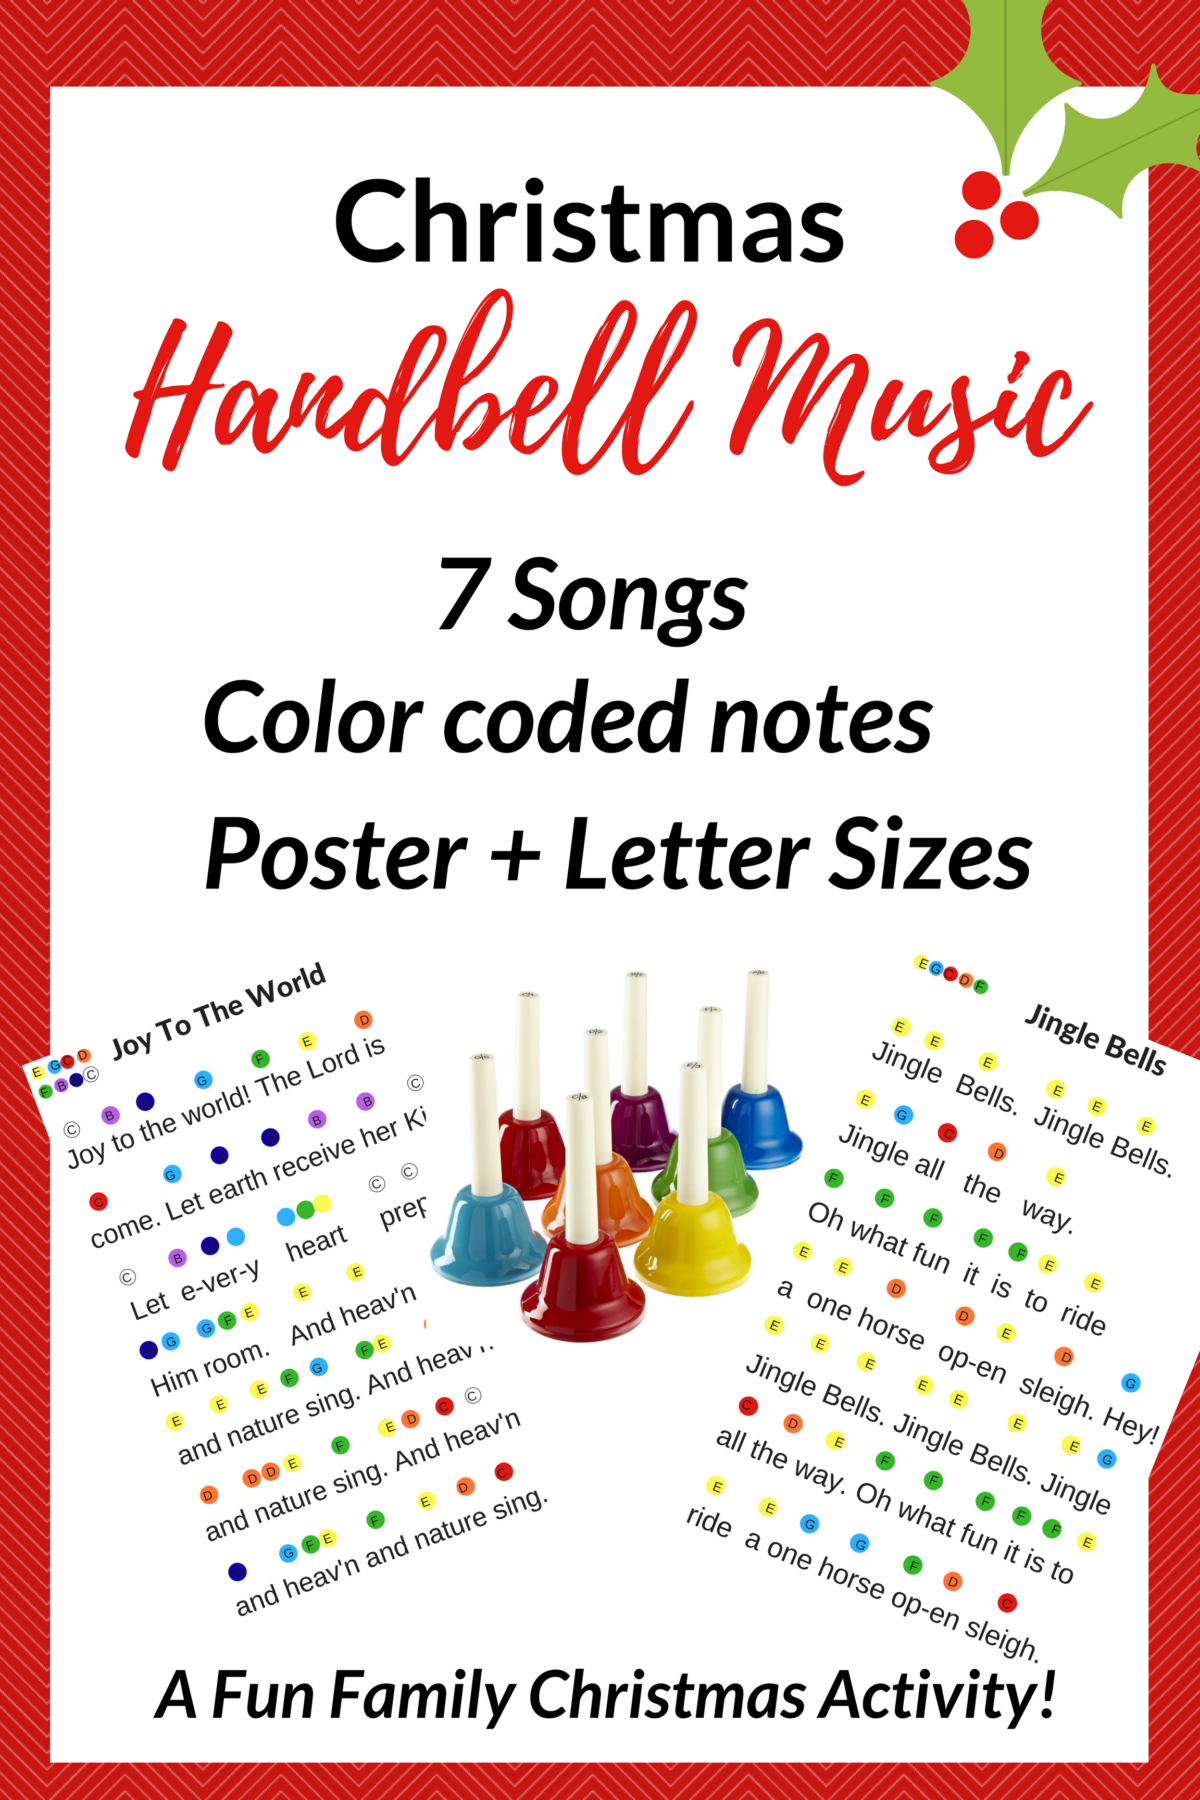 Christmas Hand Bell Songs Music 2020 Digital Download So Festive Christmas Music Activities Christmas Concert Ideas Hand Bell Songs